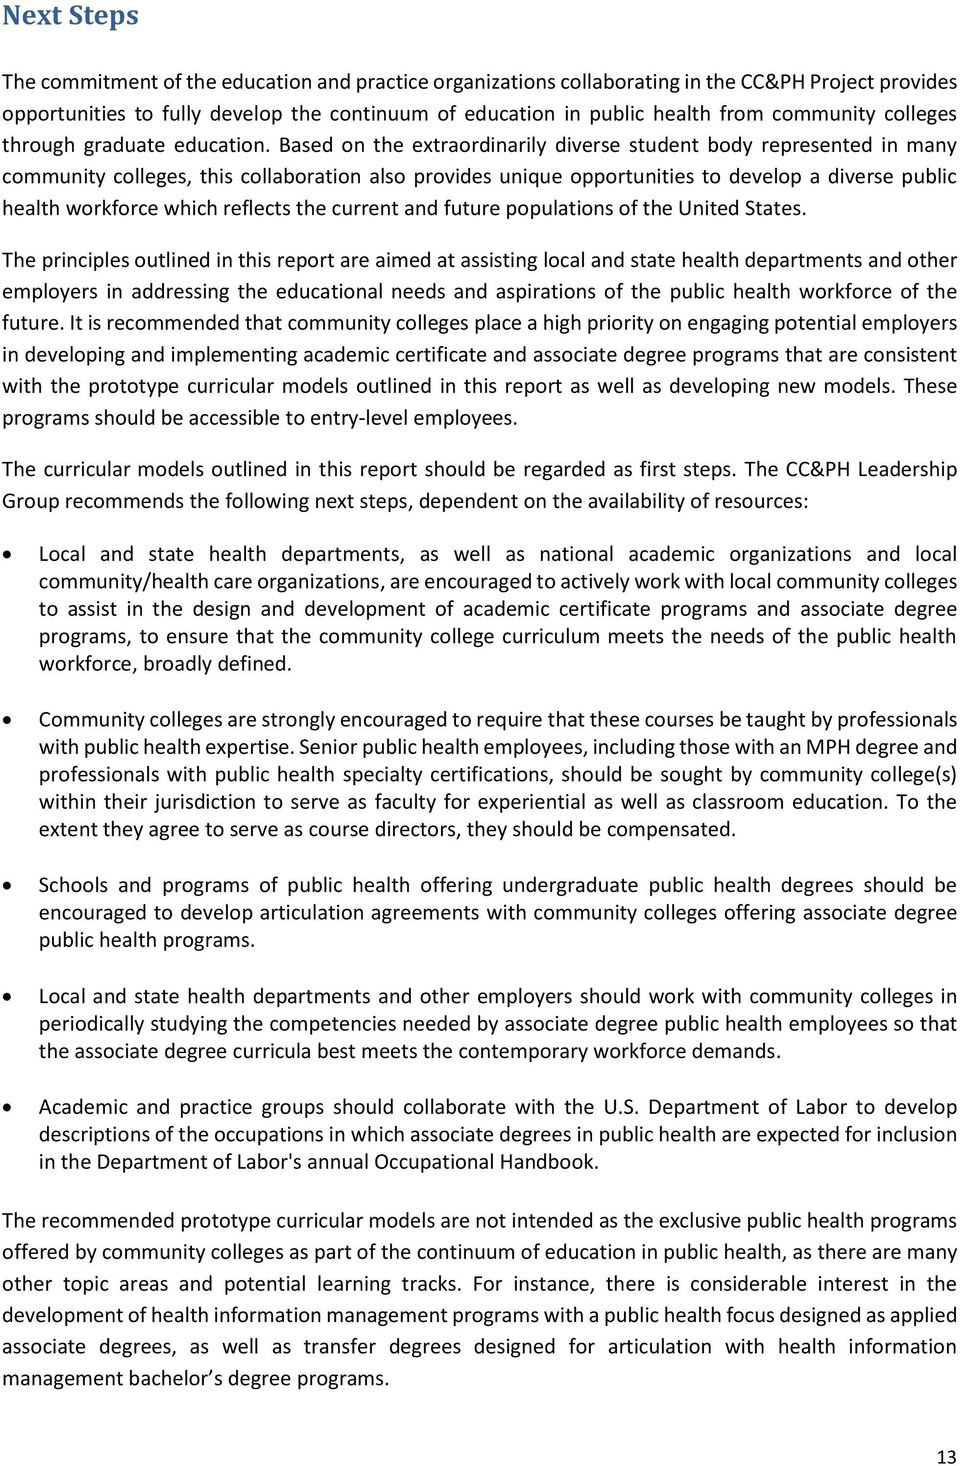 Based on the extraordinarily diverse student body represented in many community colleges, this collaboration also provides unique opportunities to develop a diverse public health workforce which